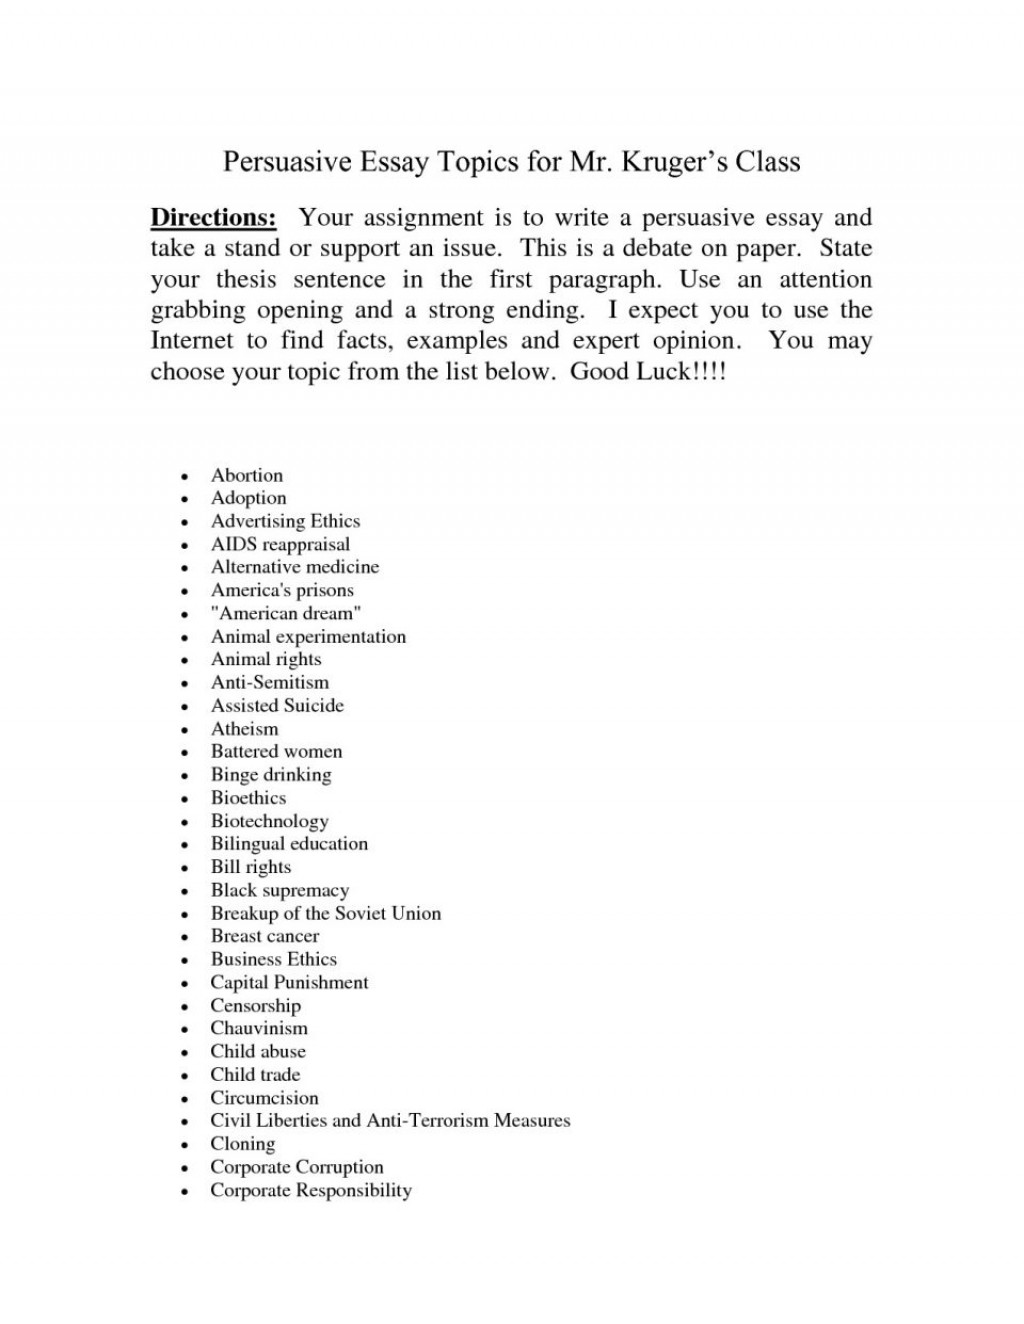 001 Research Paper Topic For Essay Barca Fontanacountryinn Within Good Persuasive Narrative Topics To Write Abo Easy About Personal Descriptive Informative Synthesis College 960x1242 Beautiful American History Middle School Students Large